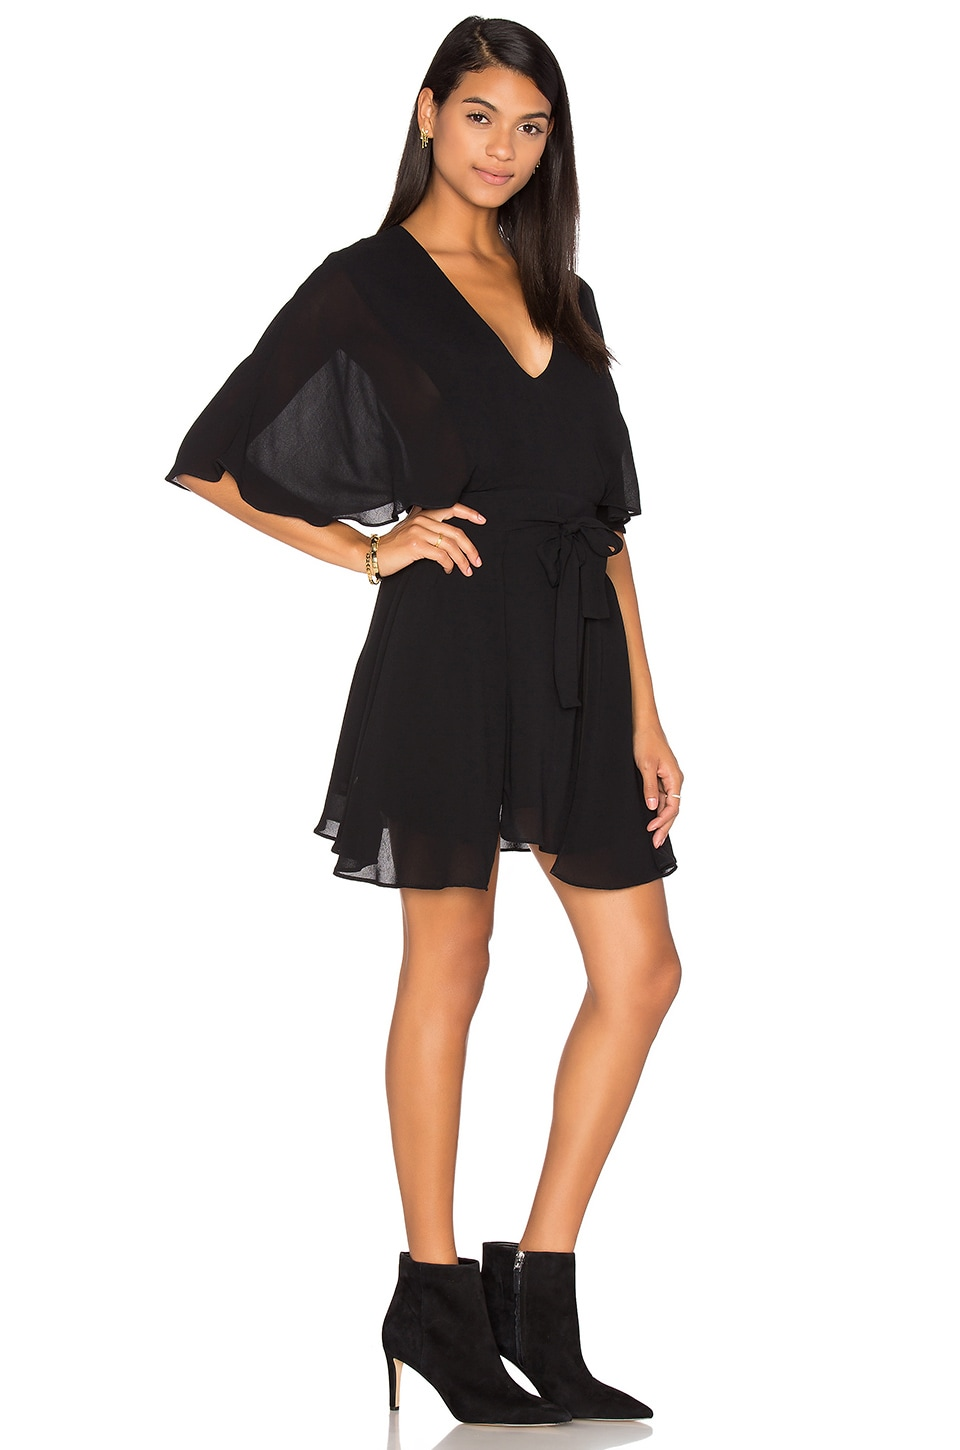 The Ray Wrap Dress